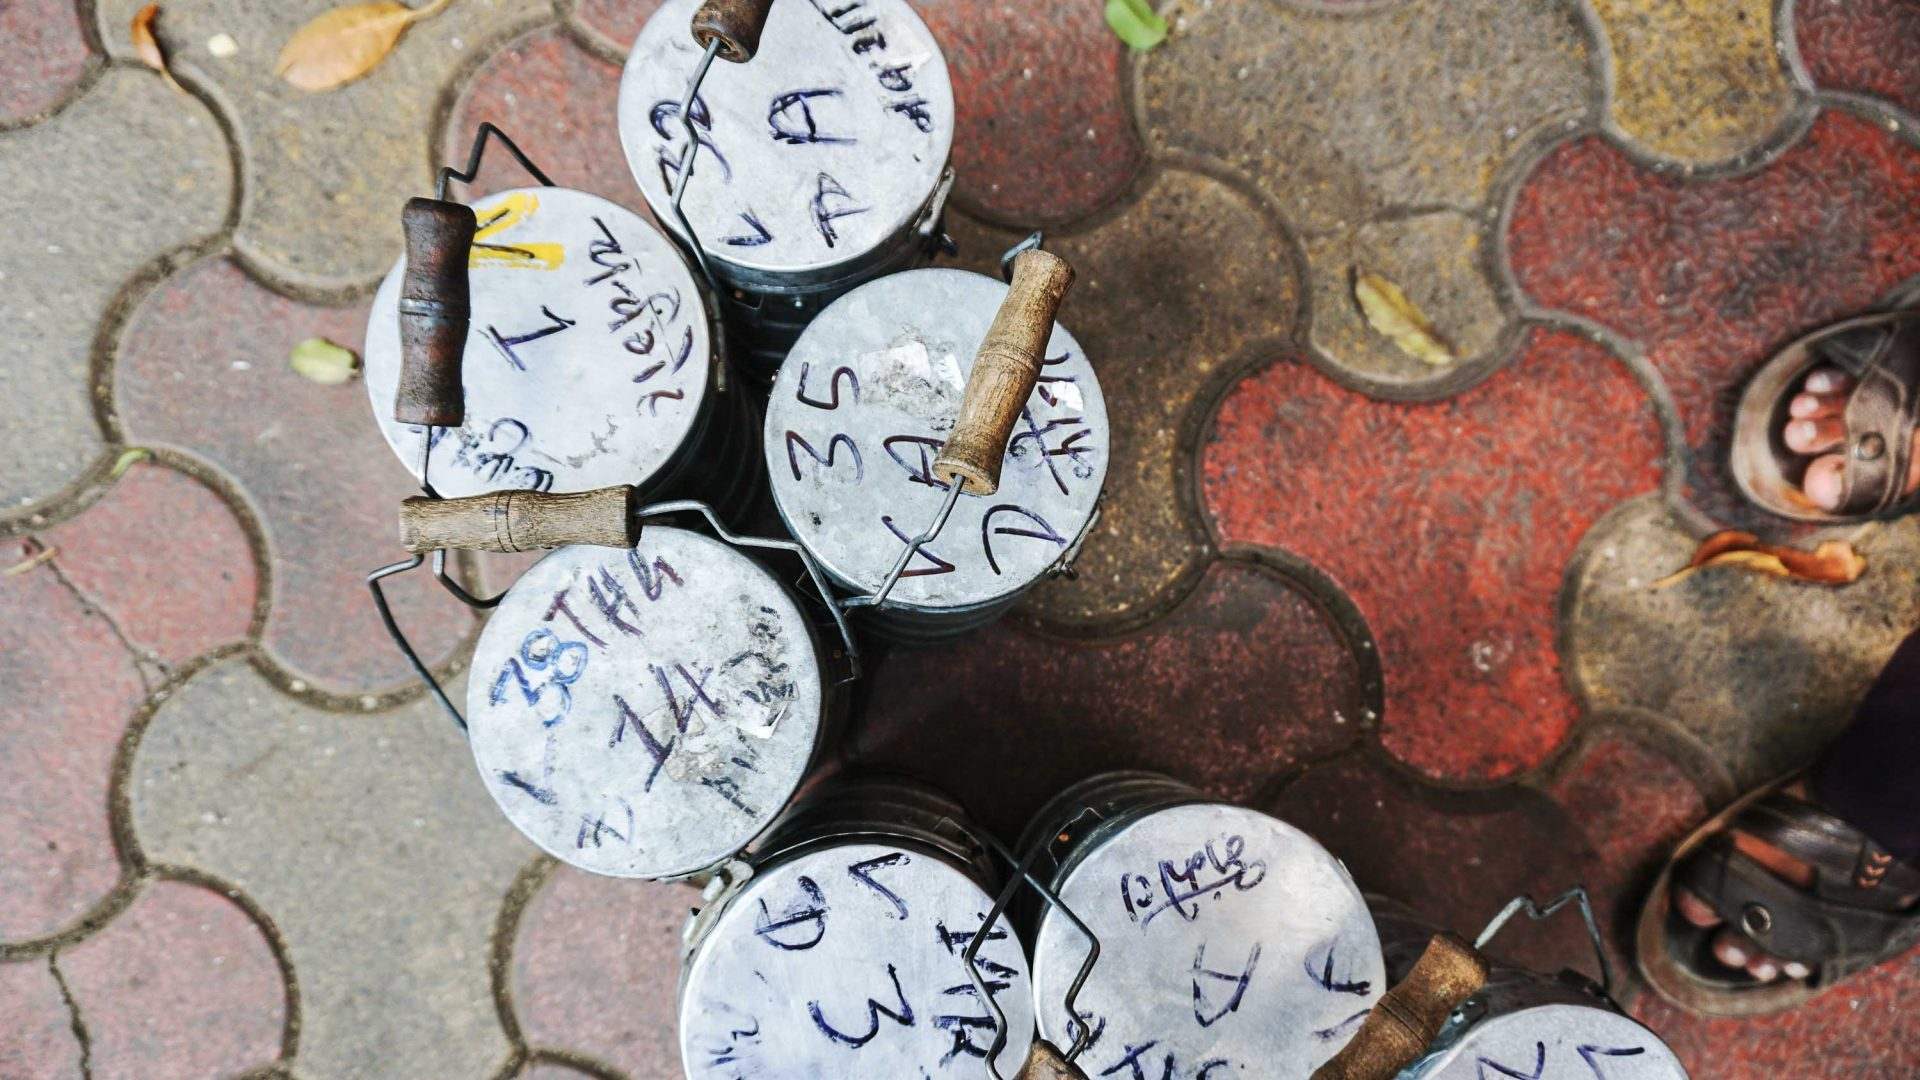 Tiffins carrying lunch are marked with a complex system of codes indicating a pick-up point, drop-off, train station, and the individual dabbawala responsible for its journey.